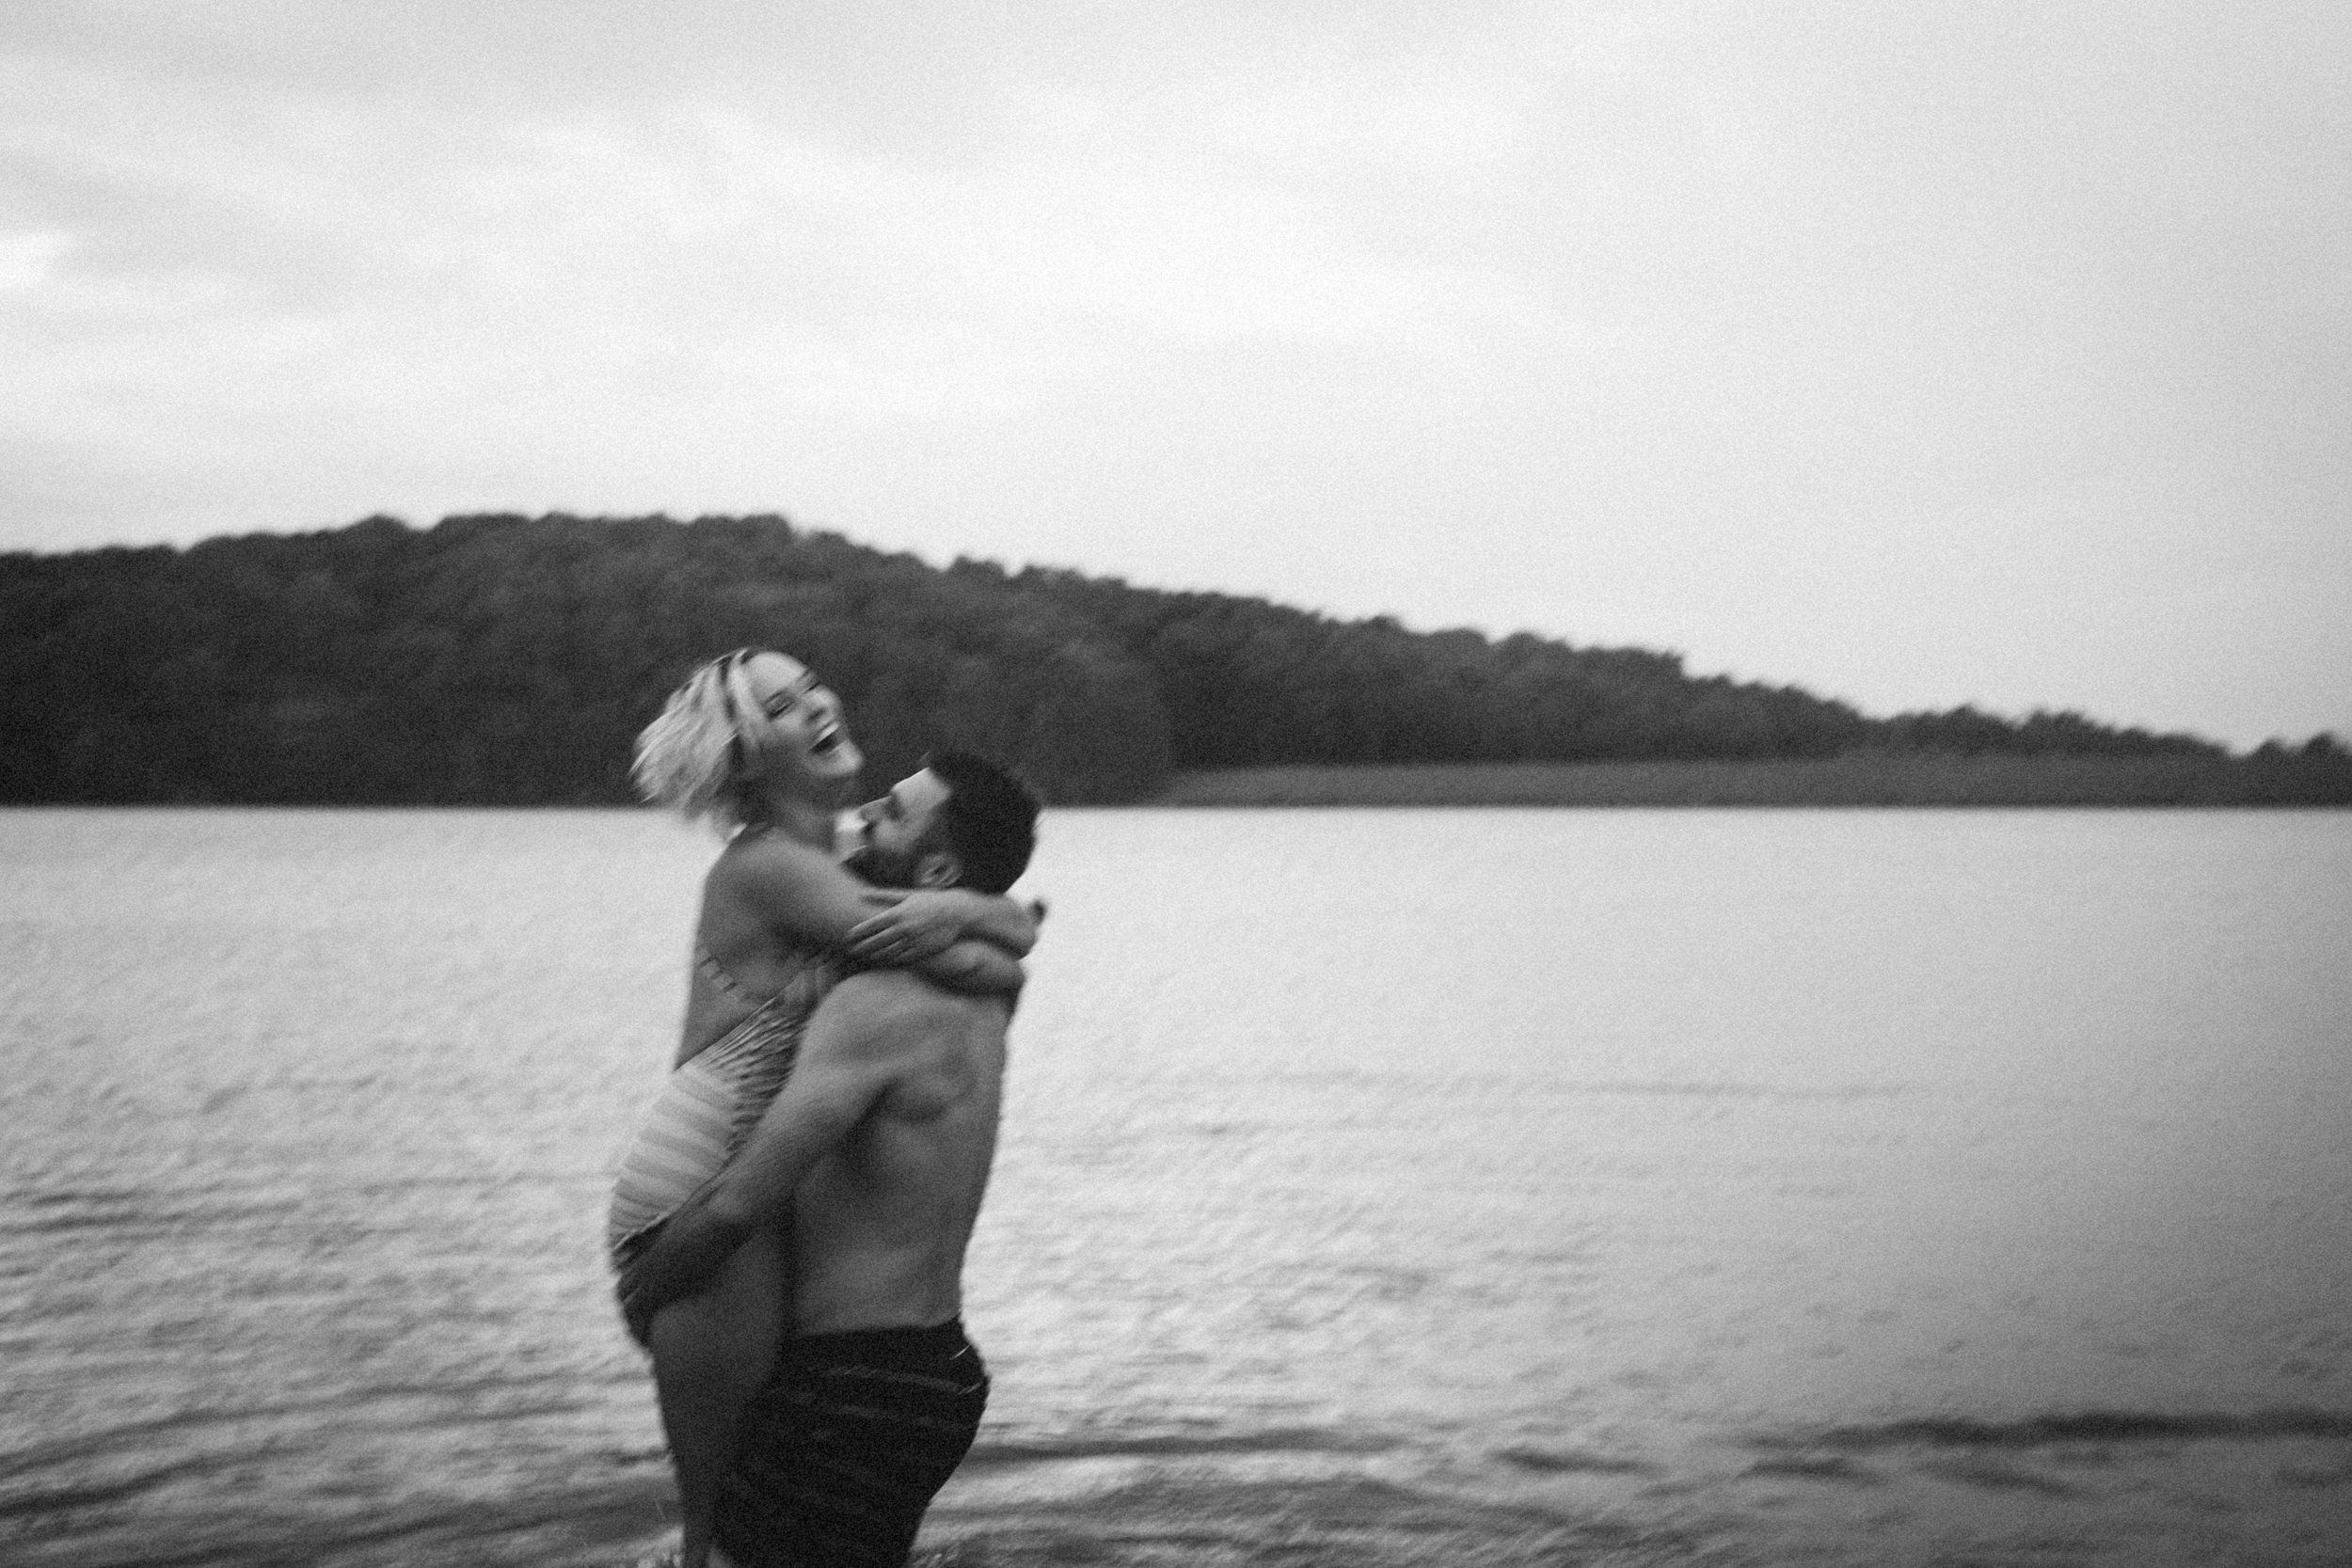 Sarah-Katherine-Davis-Photography-Louisville-Kentucky-Wedding-Elopement-Photographer-Just-Because-Session-Stormy-Blue-Hour-Swimming-In-Lake-Couple-Session-Abby-Schyler-118bw.jpg